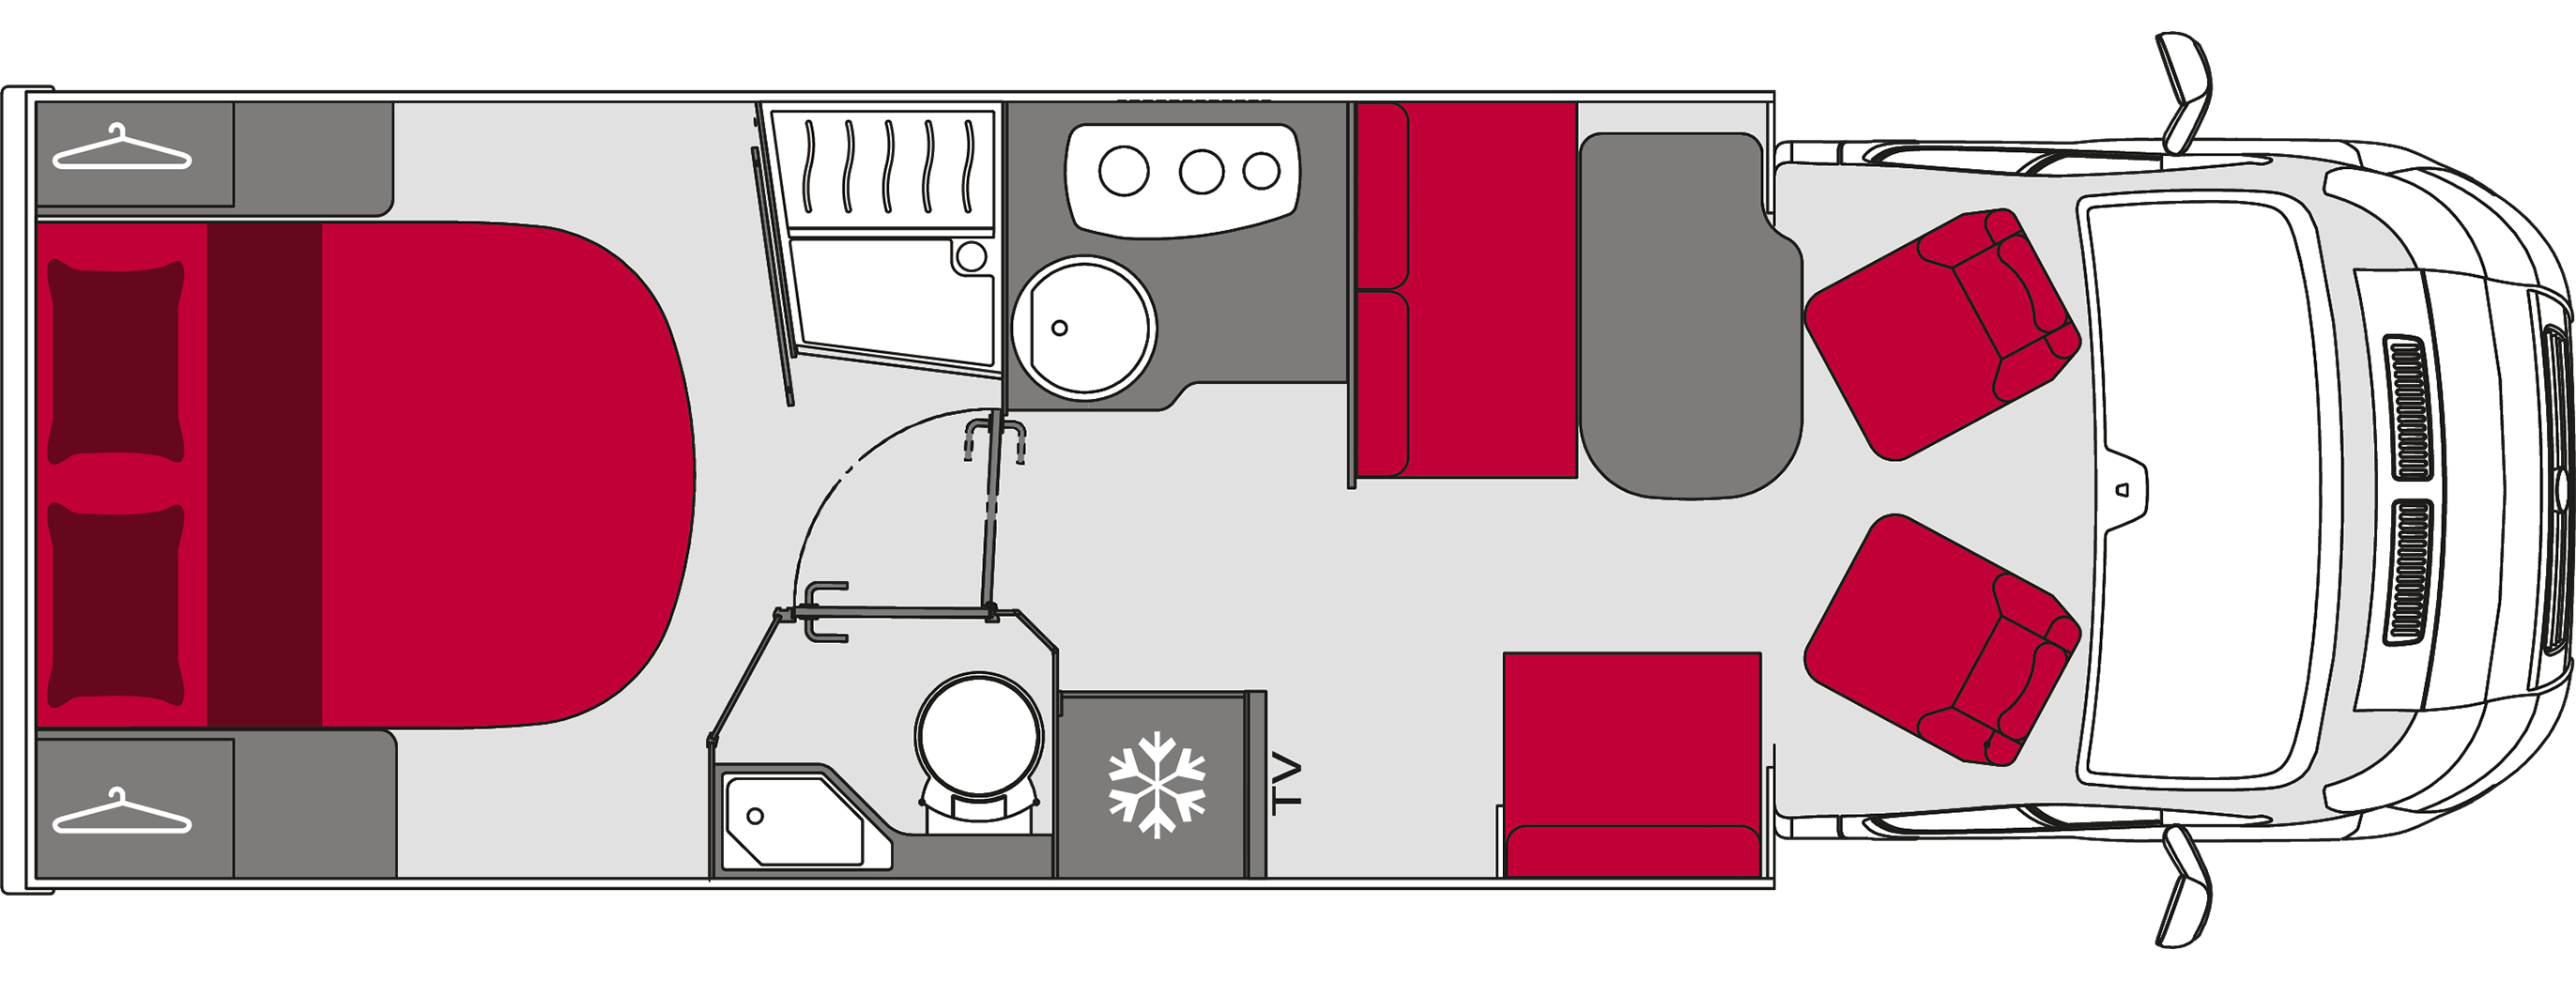 Low Profile Motorhomes And With Fold Down Series Circuit Thinglink